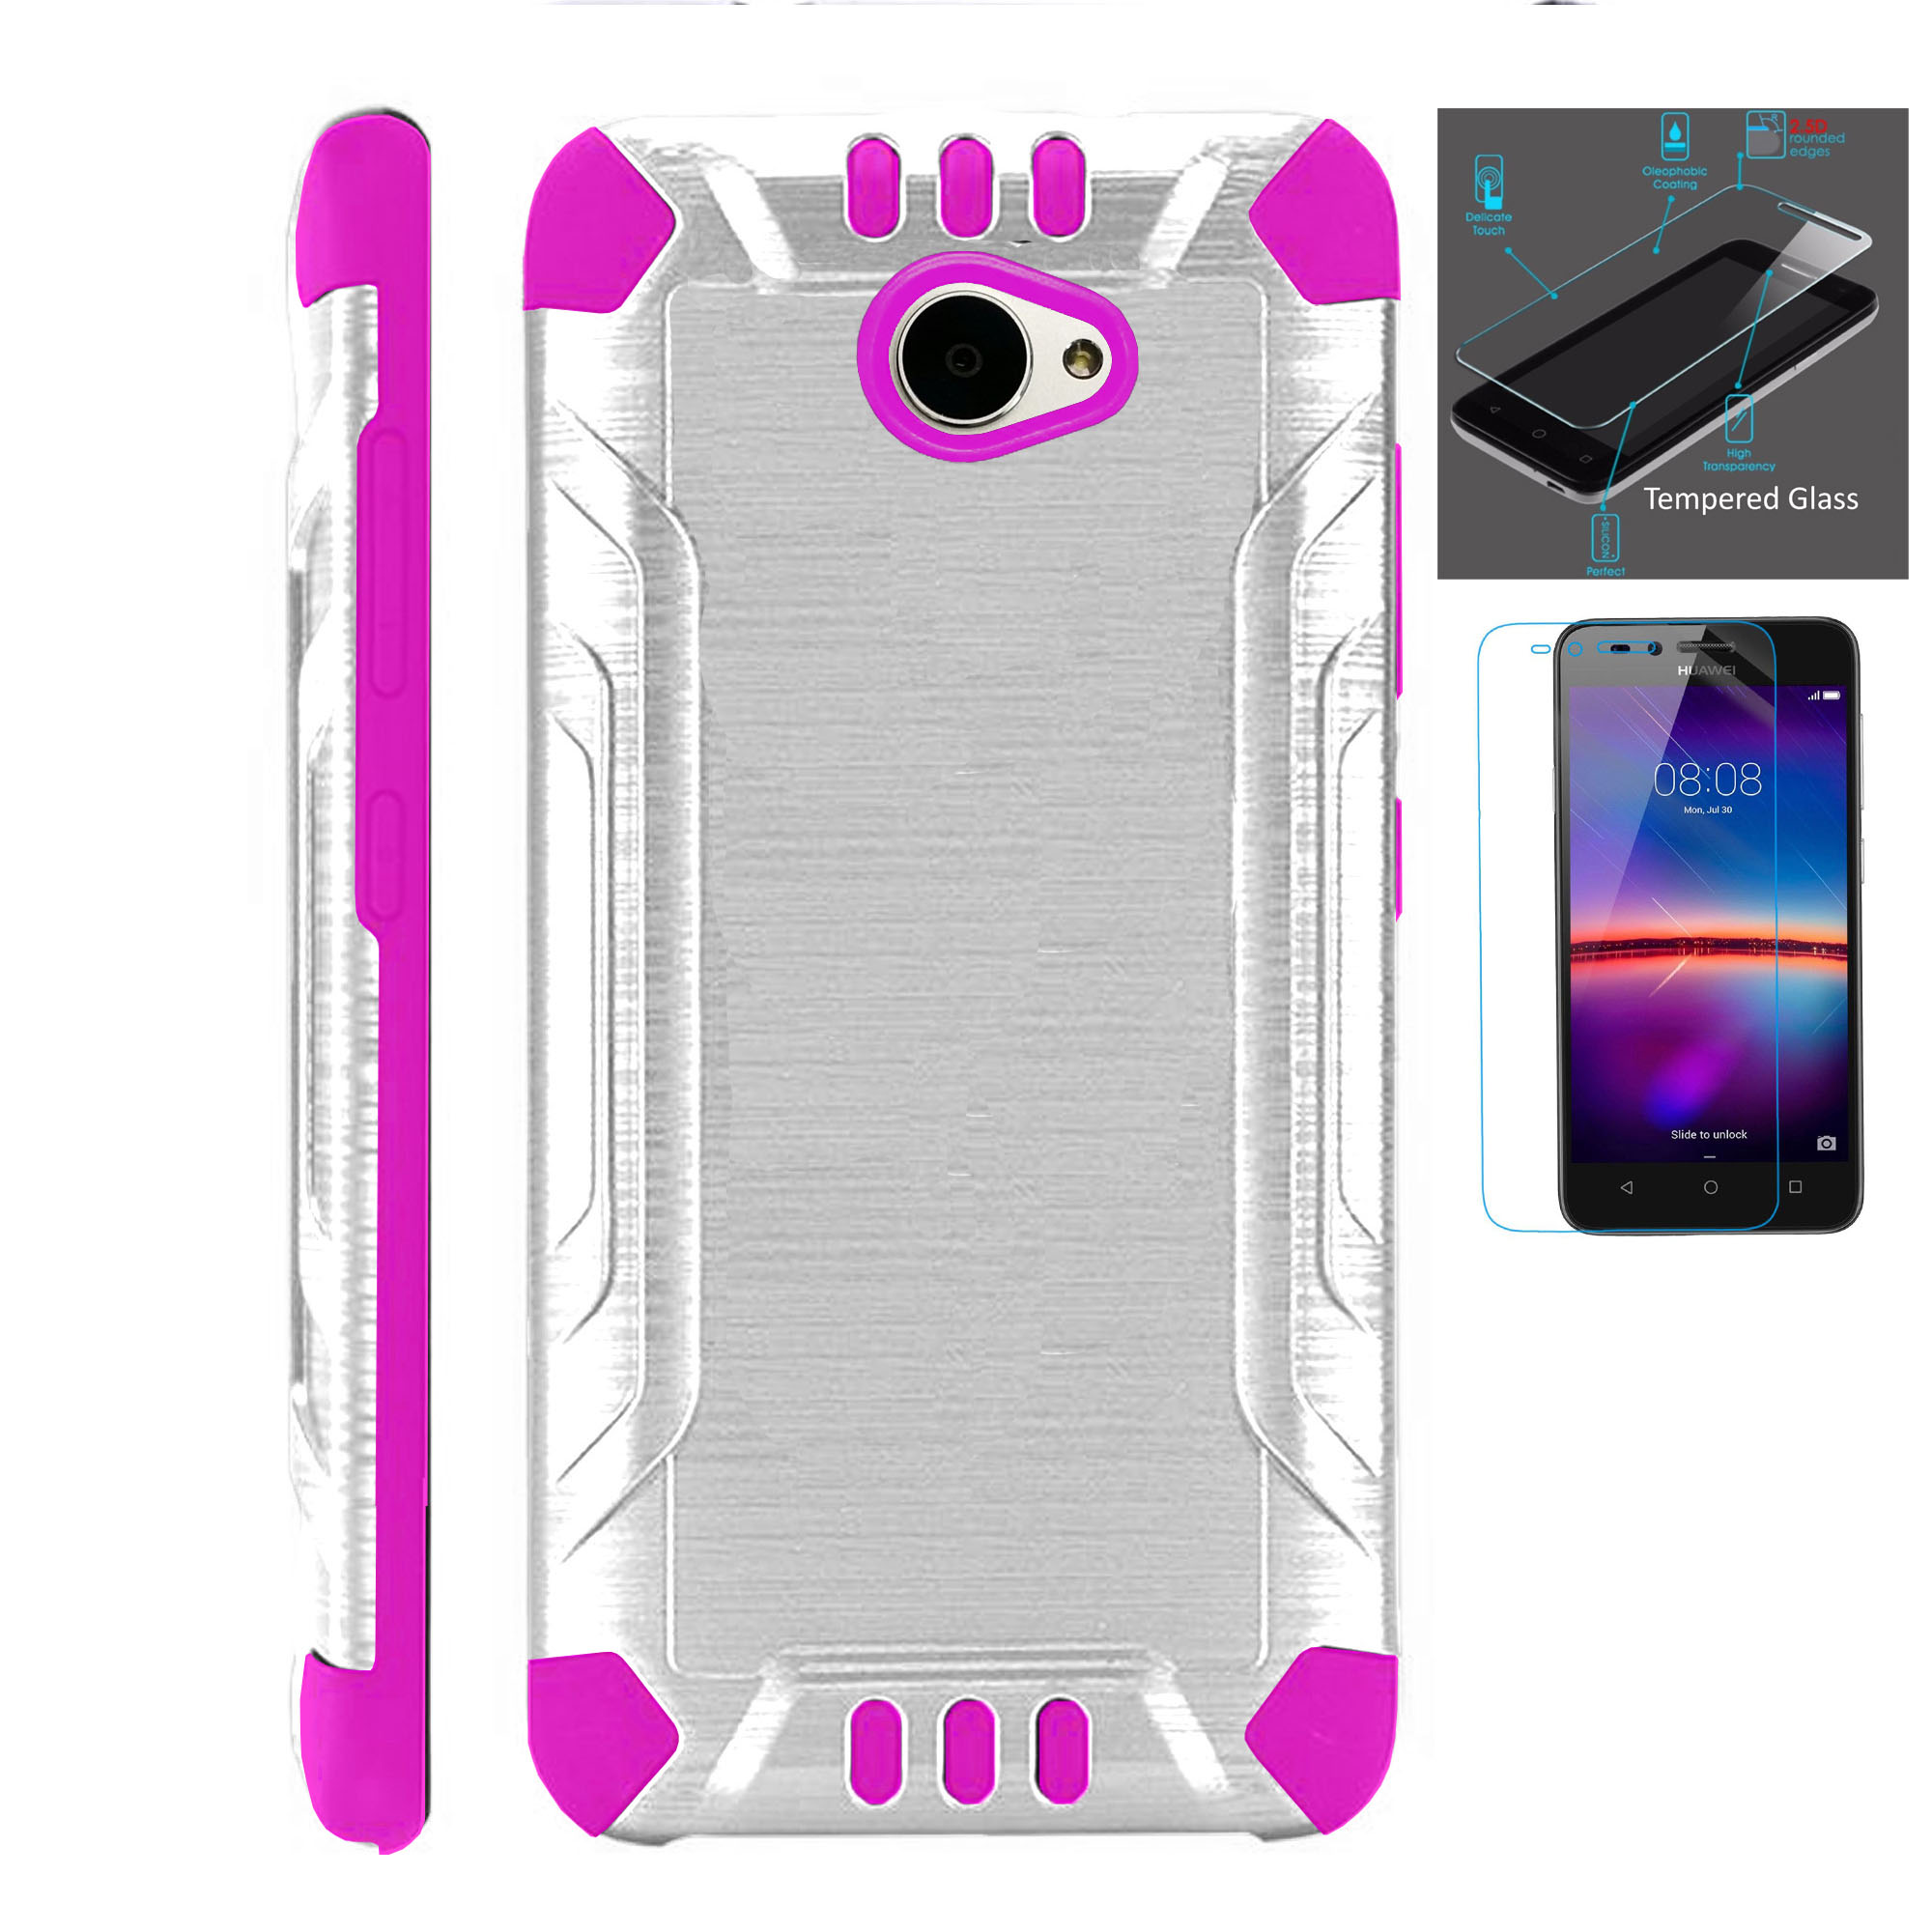 For Huawei Ascend XT2 / Huawei Ascend XT 2 / Huawei Elate 4G Case + Tempered Glass Slim Dual Layer Brushed Metal Texture Hybrid TPU Combat Phone Cover (Silver/Pink)